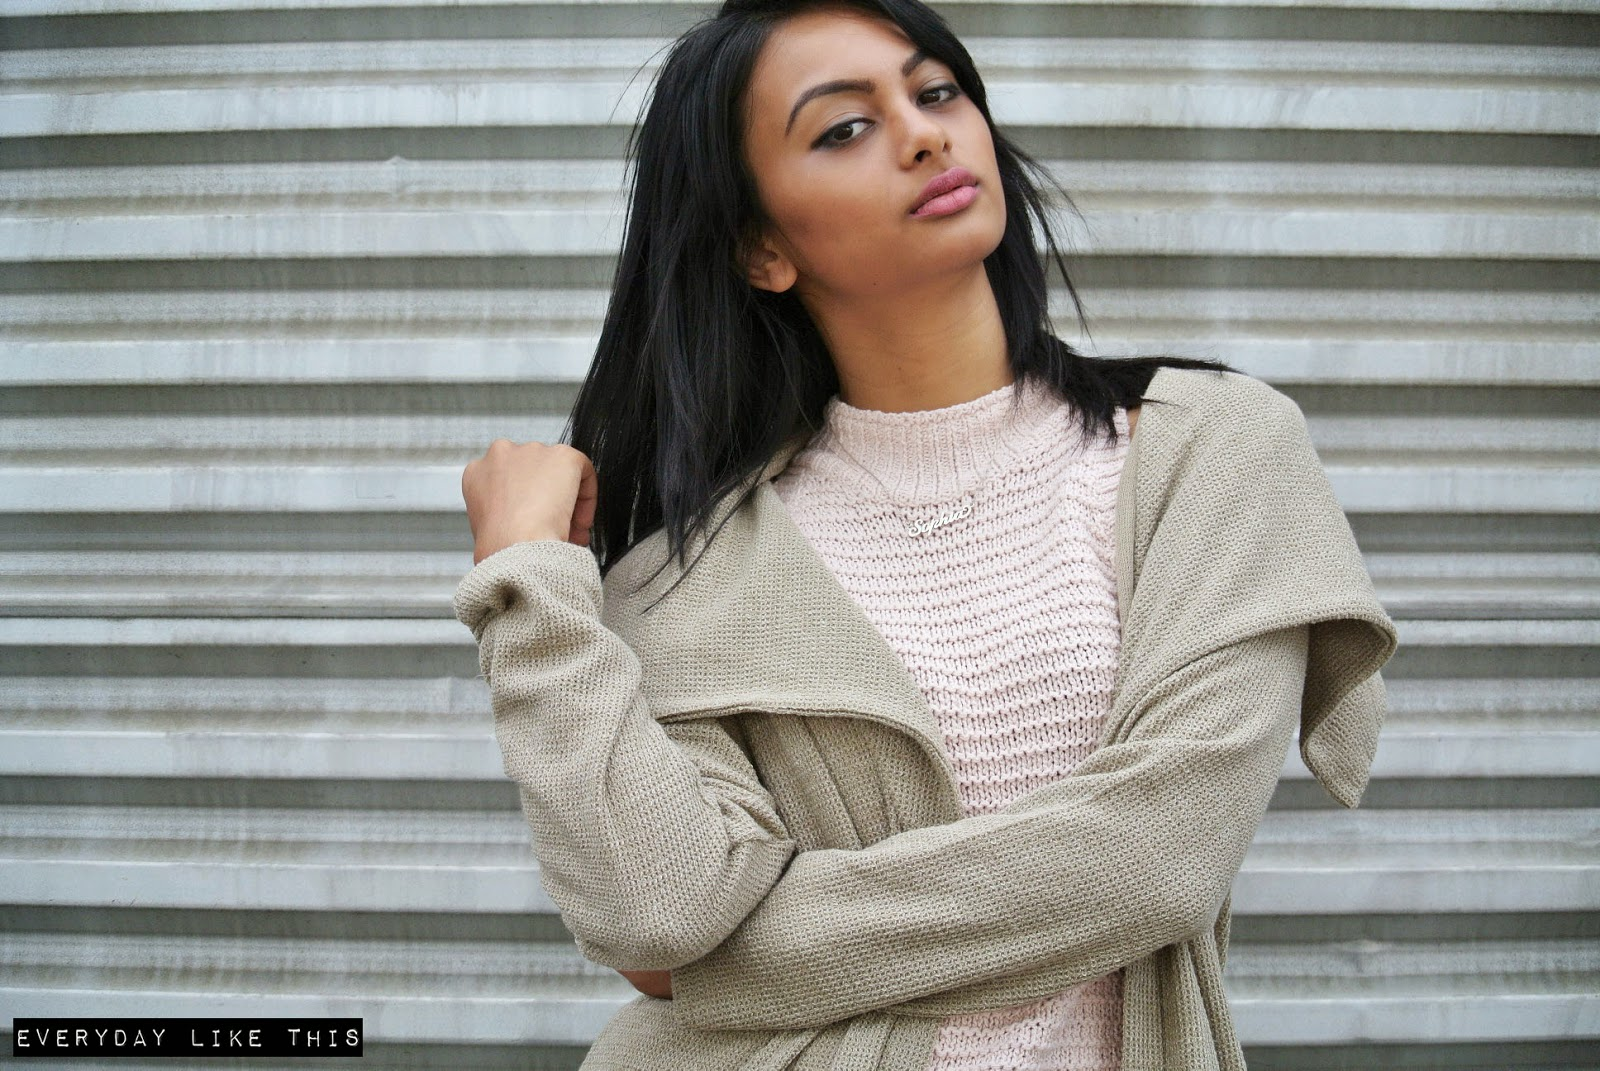 Tobi Sportsgirl Bonds Klara Cosmetics everyday like this fashion blogger melbourne style neutral autumn winter 2015